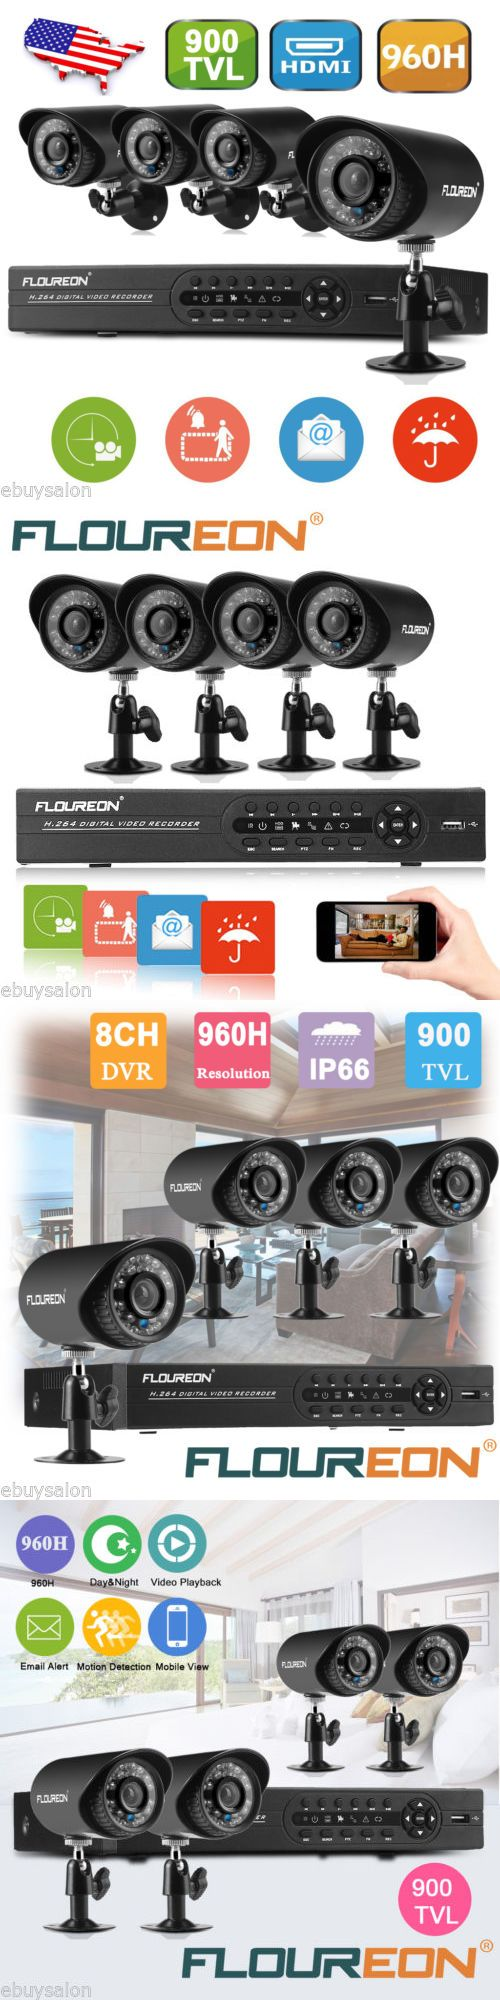 Surveillance Security Systems: 8Ch 960H Cctv Dvr+ 4 X 900Tvl Waterproof Onvif Ir-Cut Camera Security System Kit BUY IT NOW ONLY: $85.99